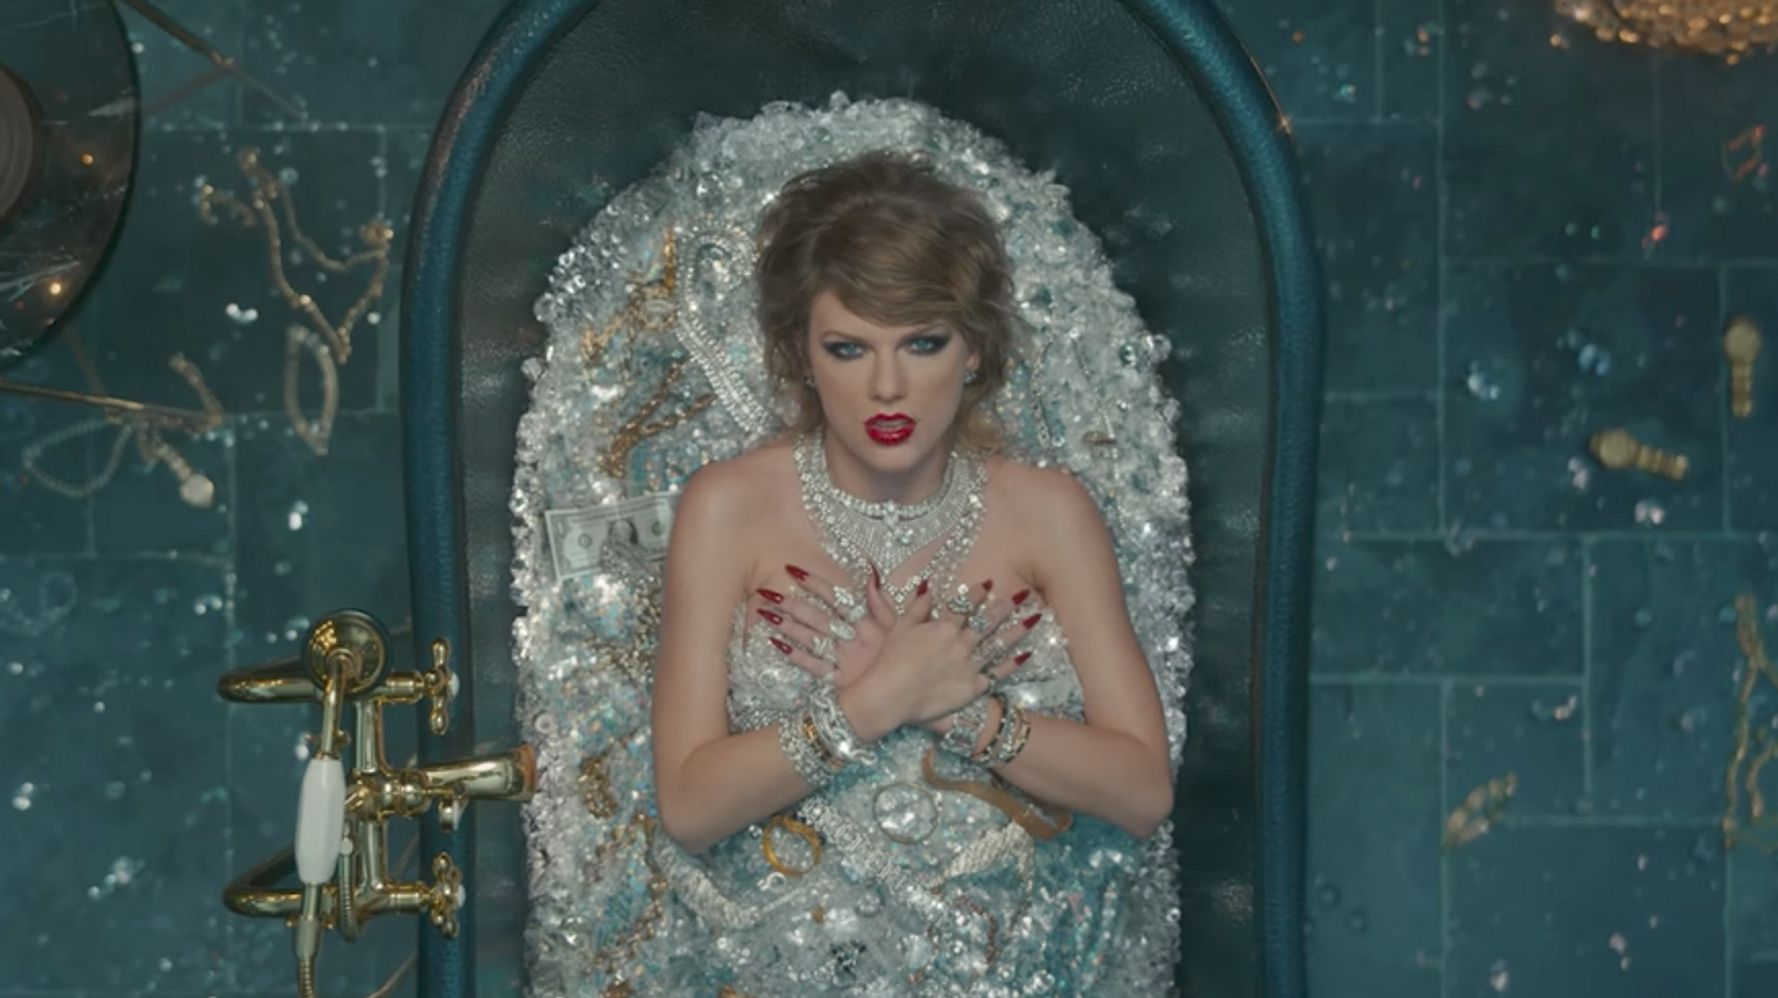 Taylor Swift's 'Look What You Made Me Do' Video References